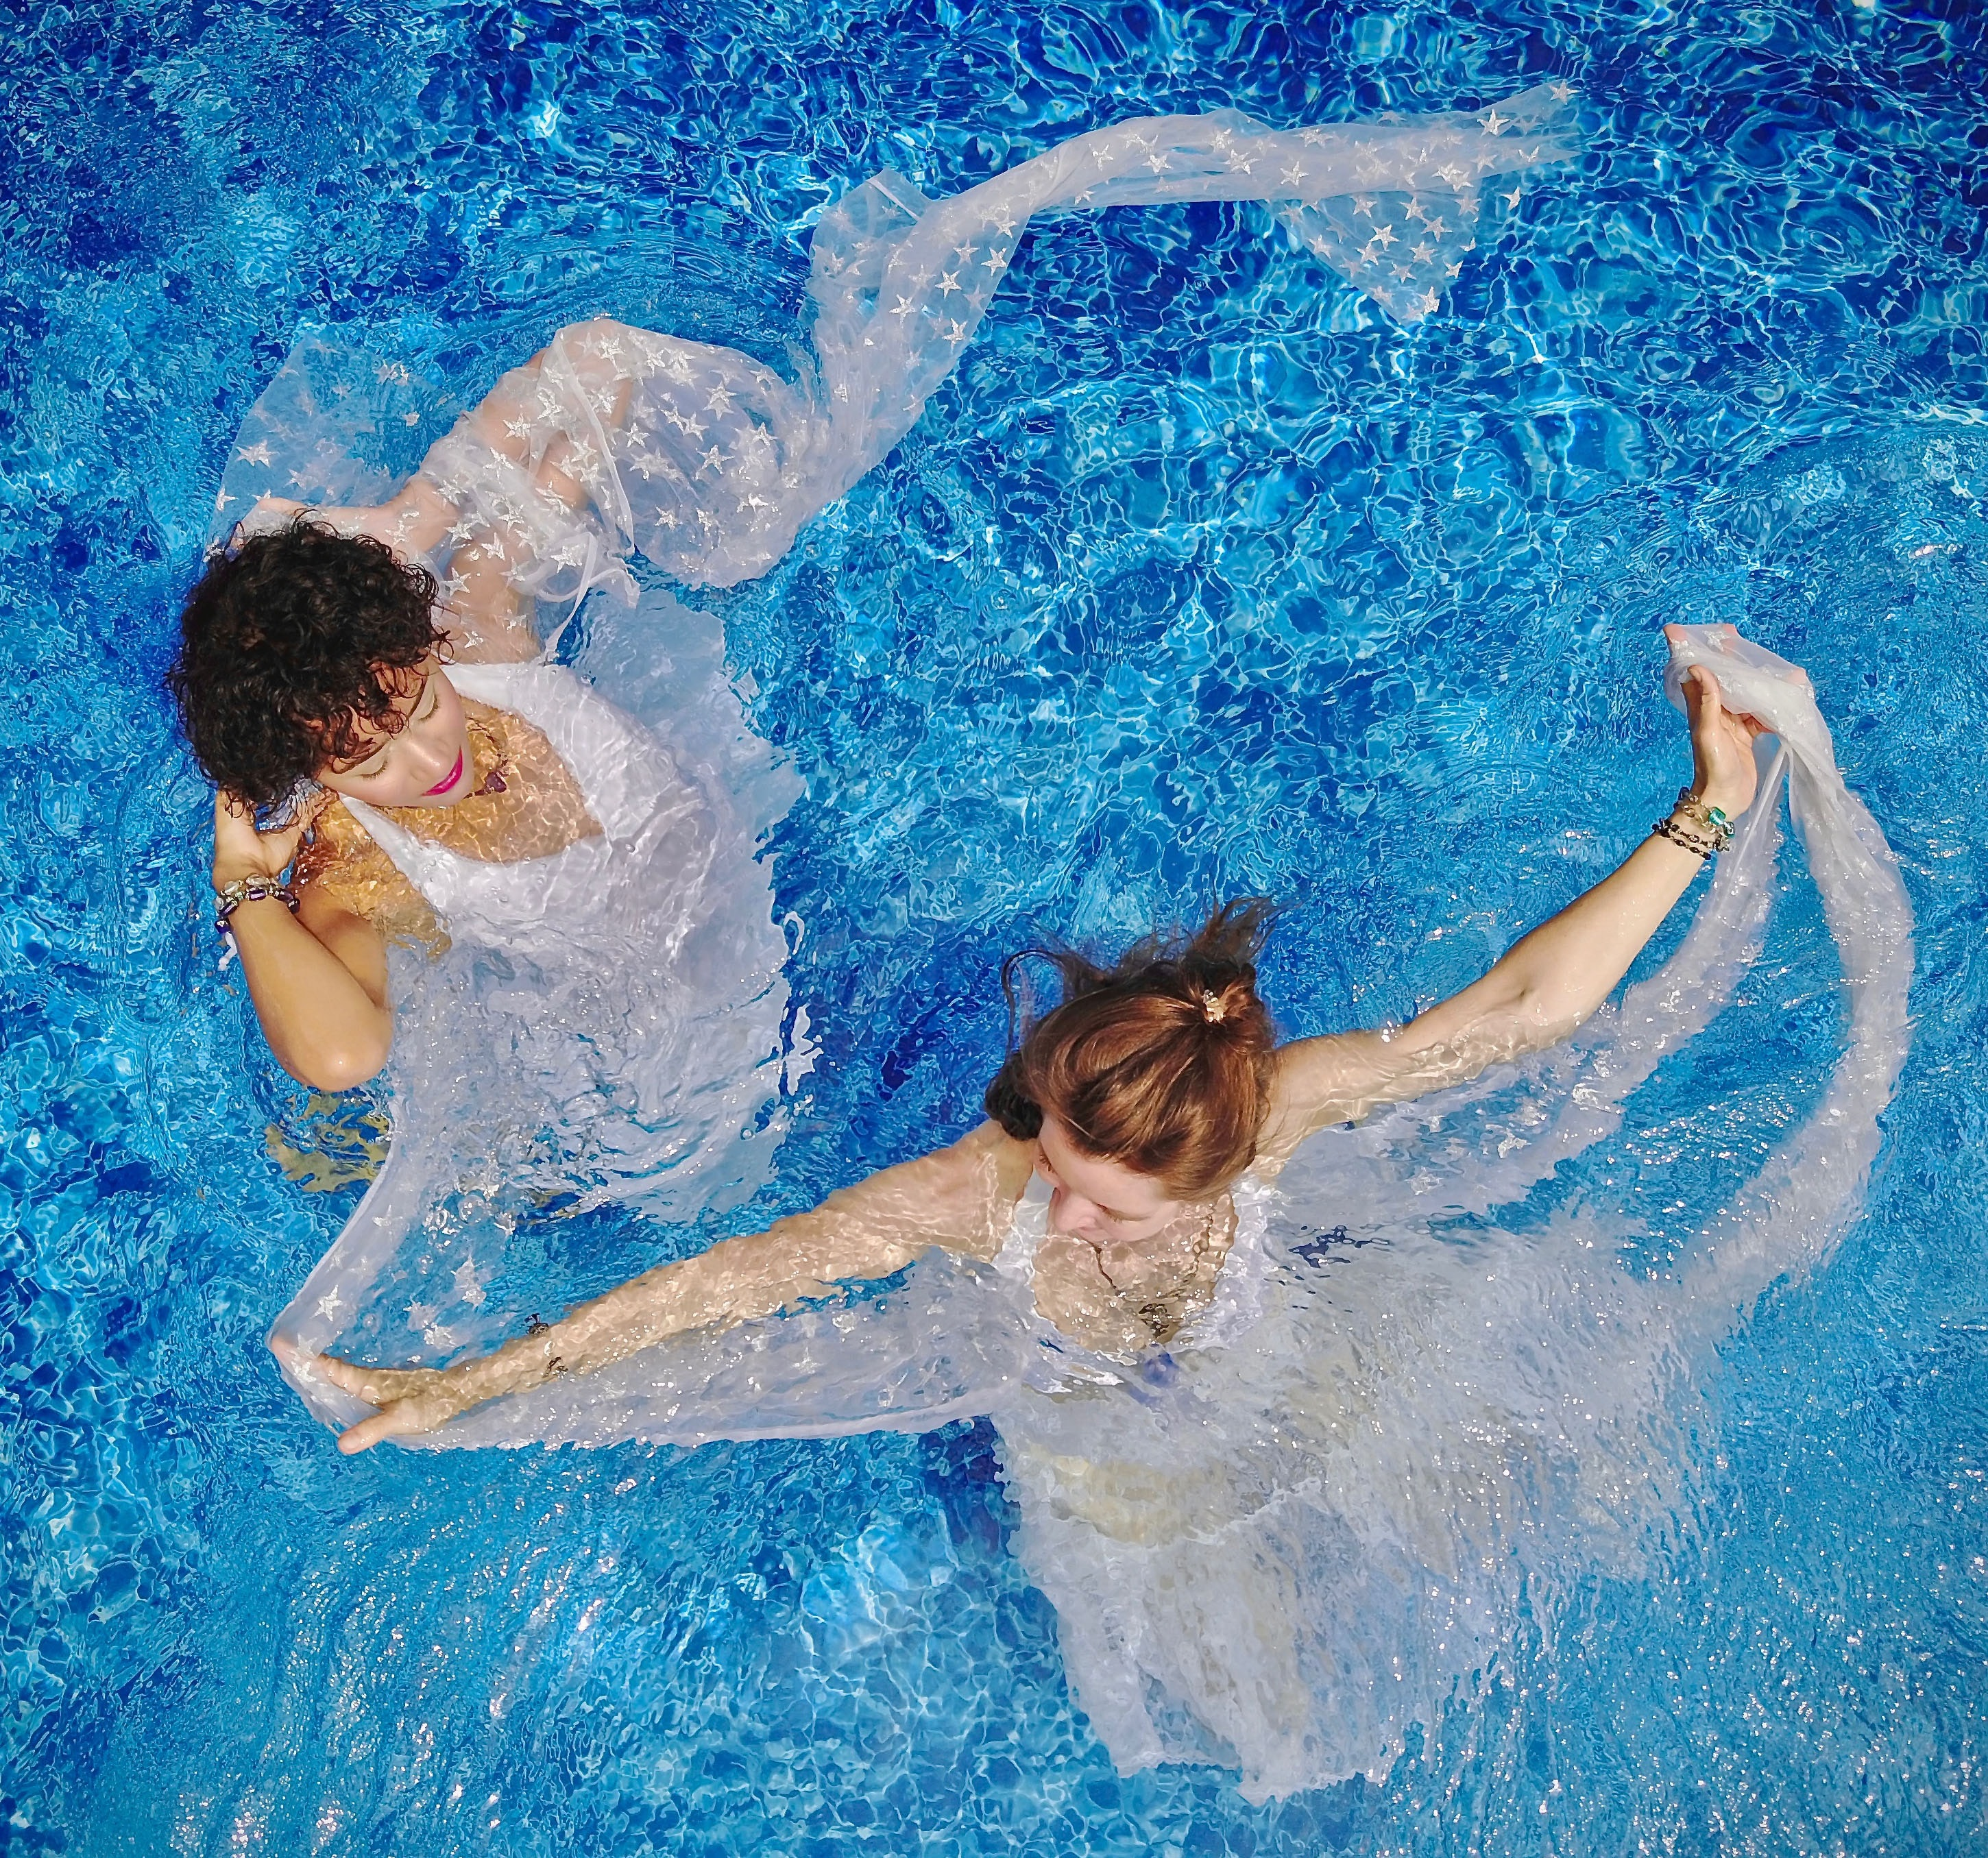 aerial view photography of two women on water during daytime